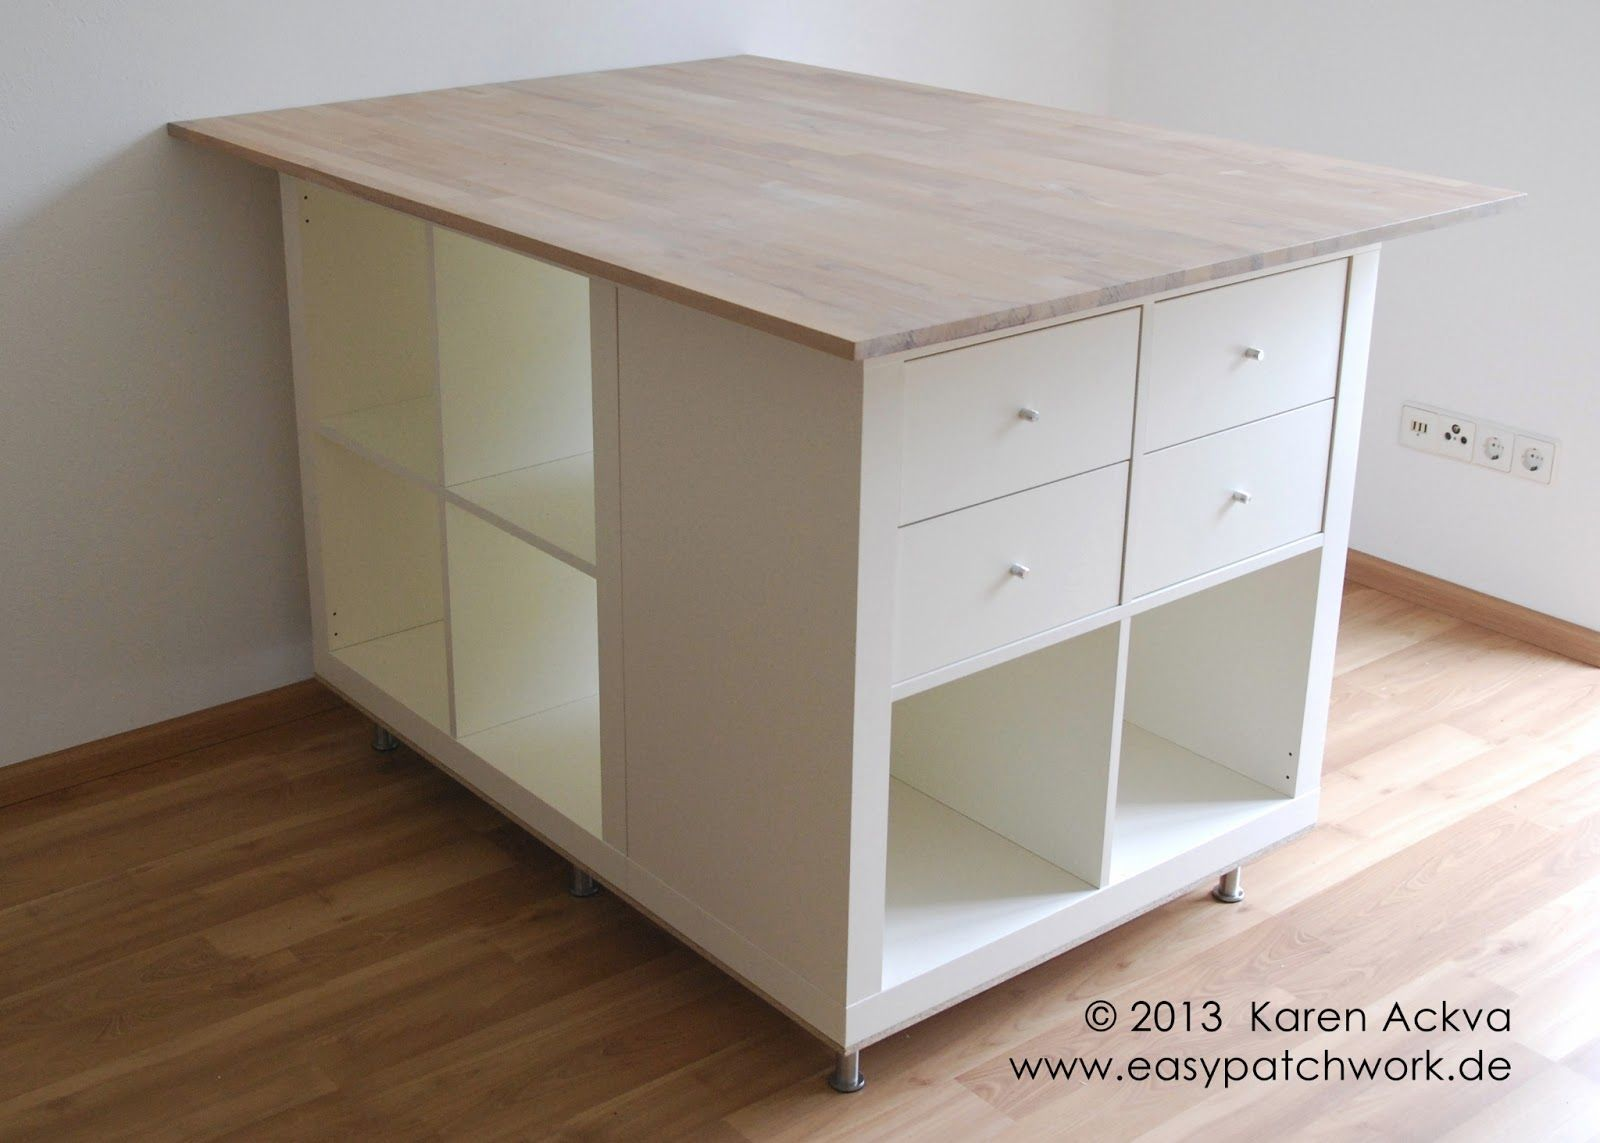 Diy ikea sewing table  cutting table diy  Sewing Room  Pinterest  Cutting tables